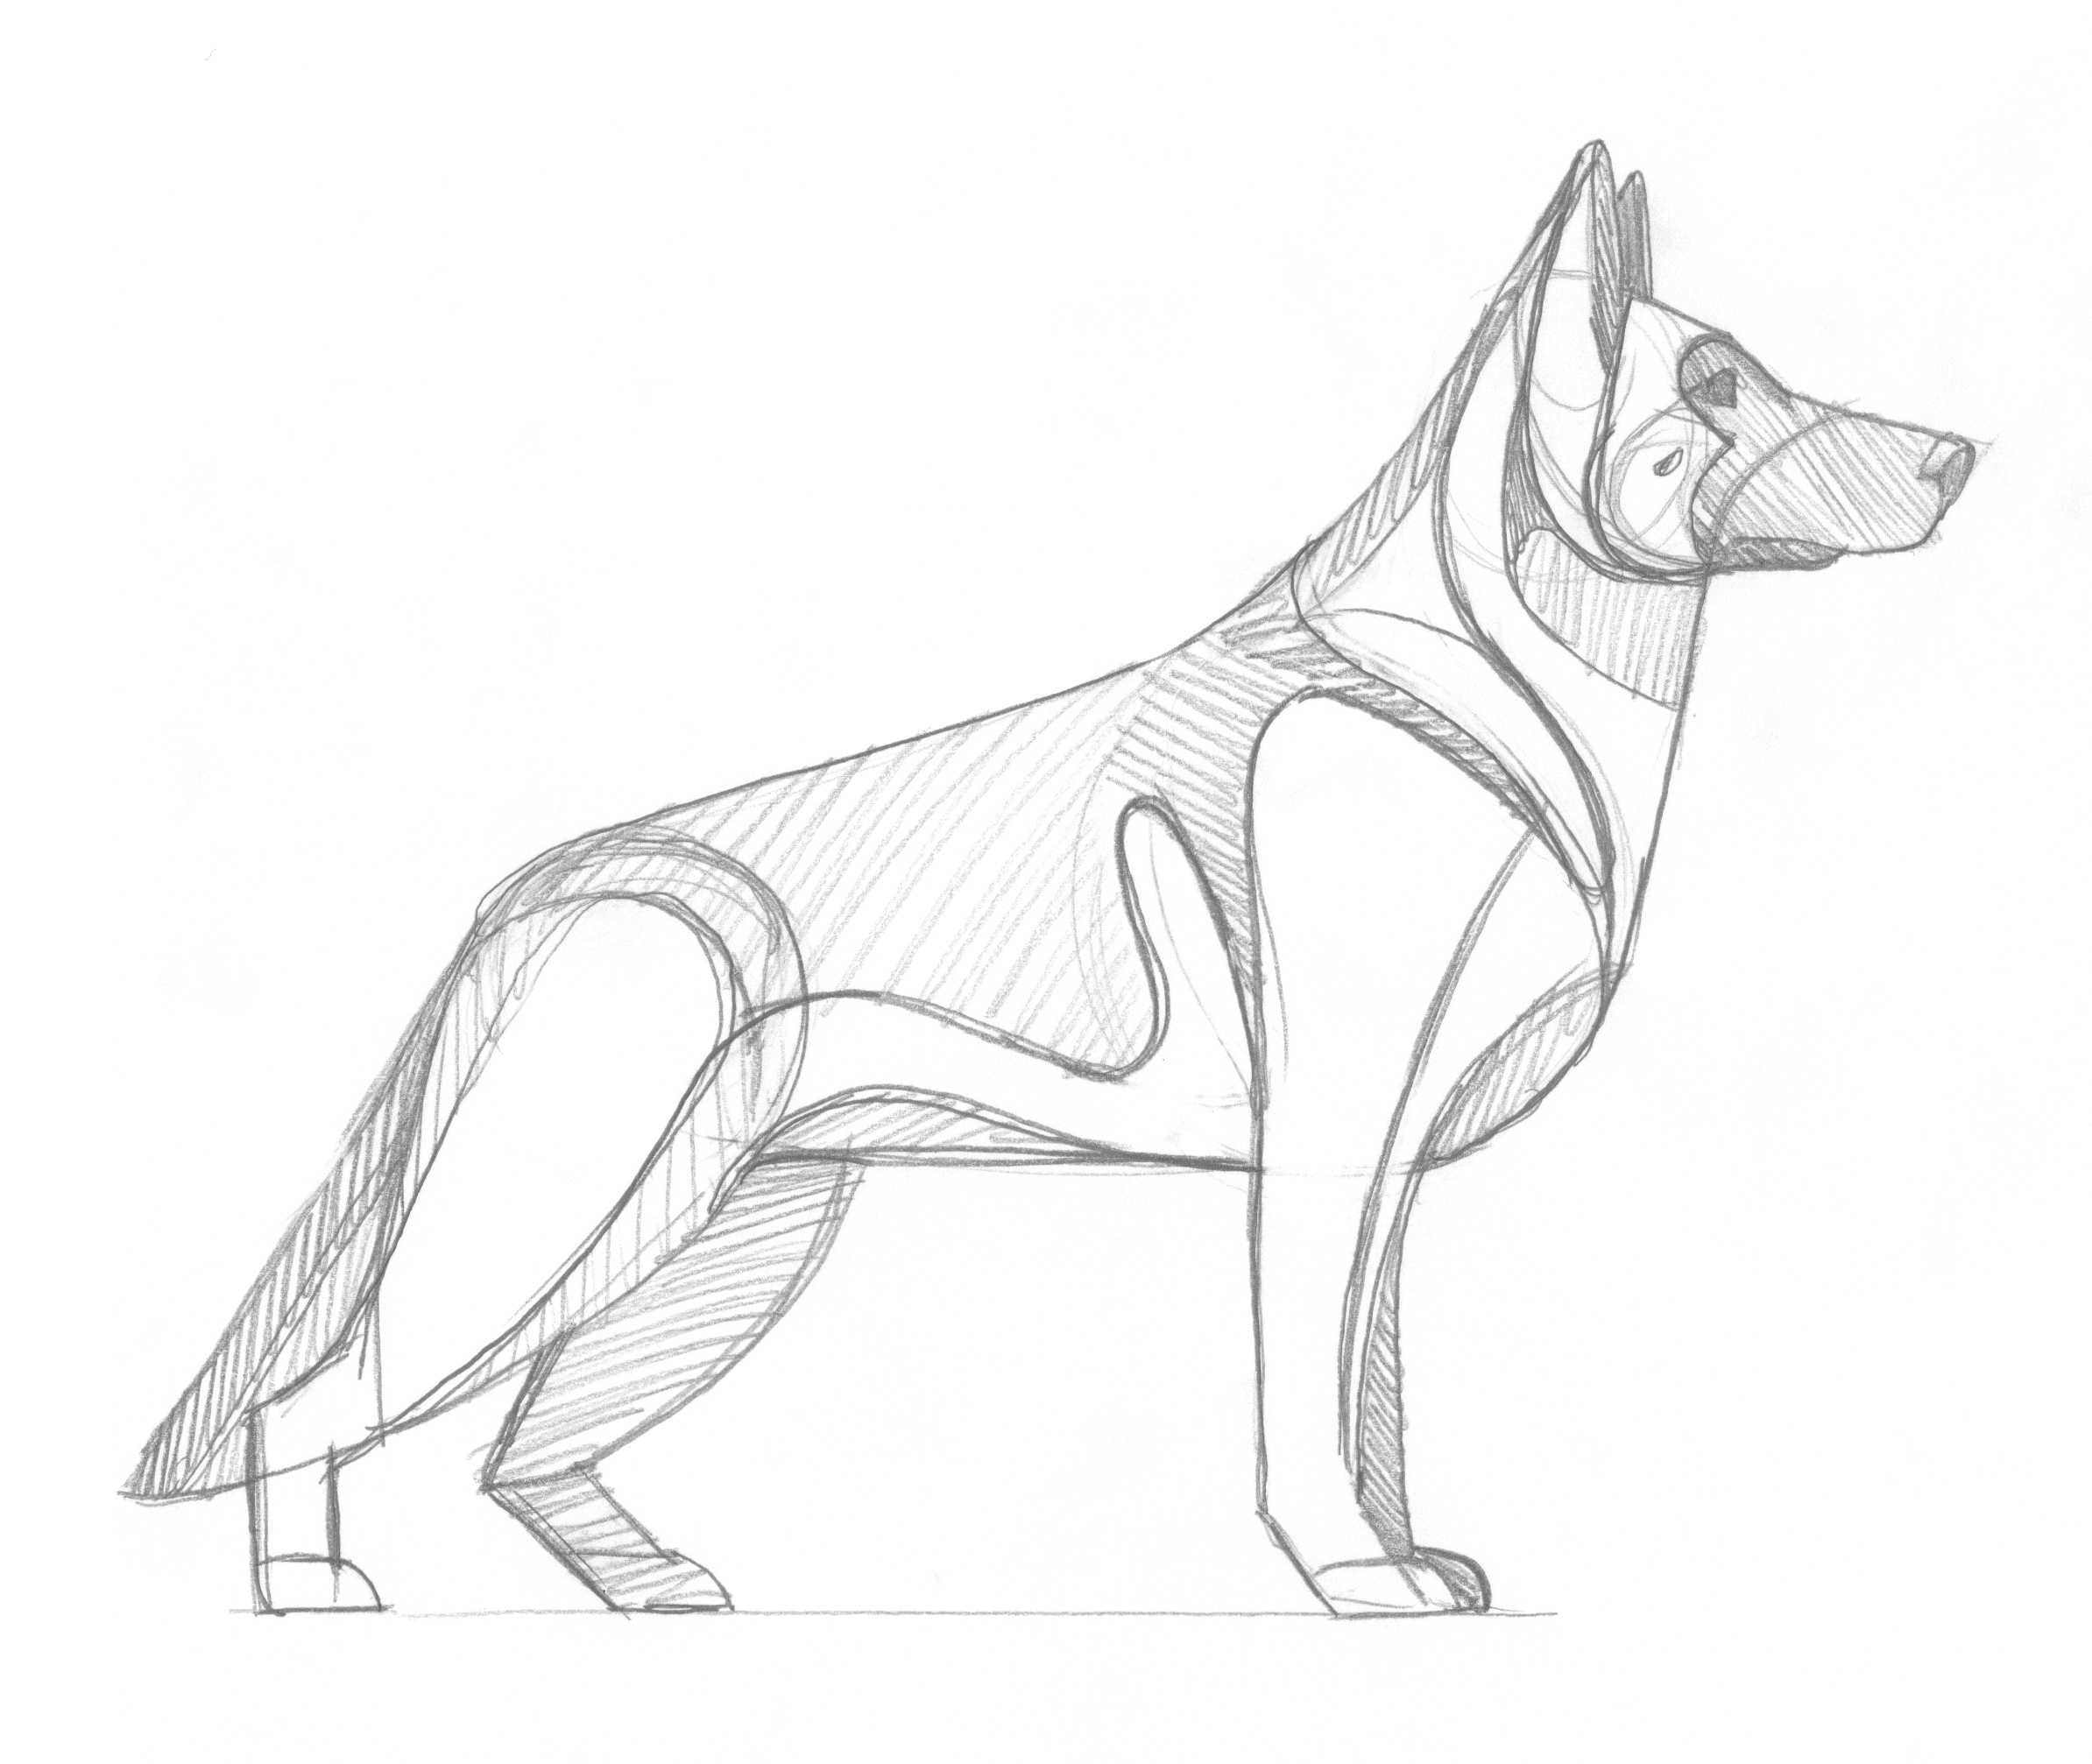 German Shepherd Sketch by DKNG